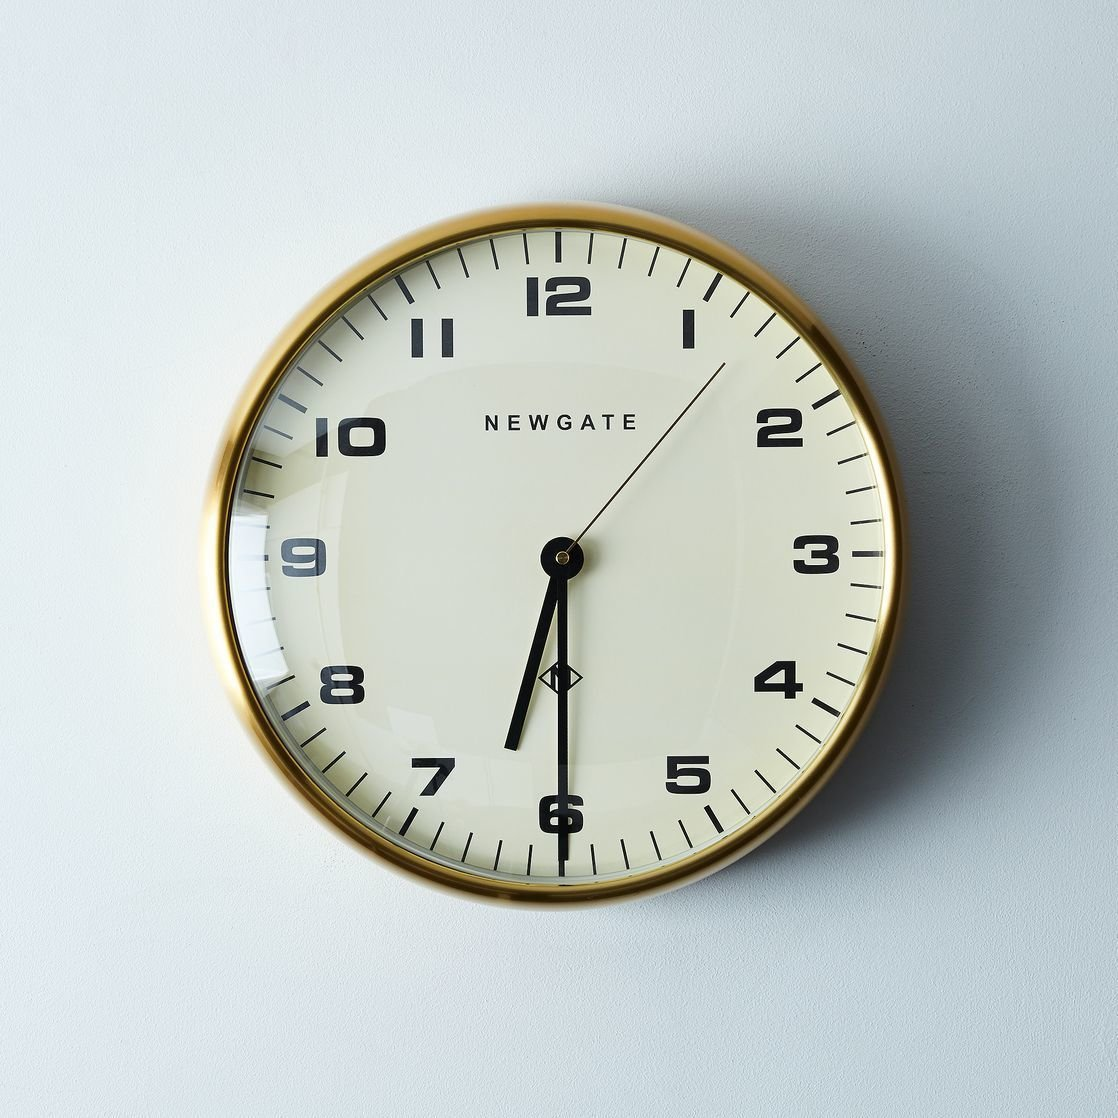 Photo 1 of 1 in Chrysler Brass Wall Clock